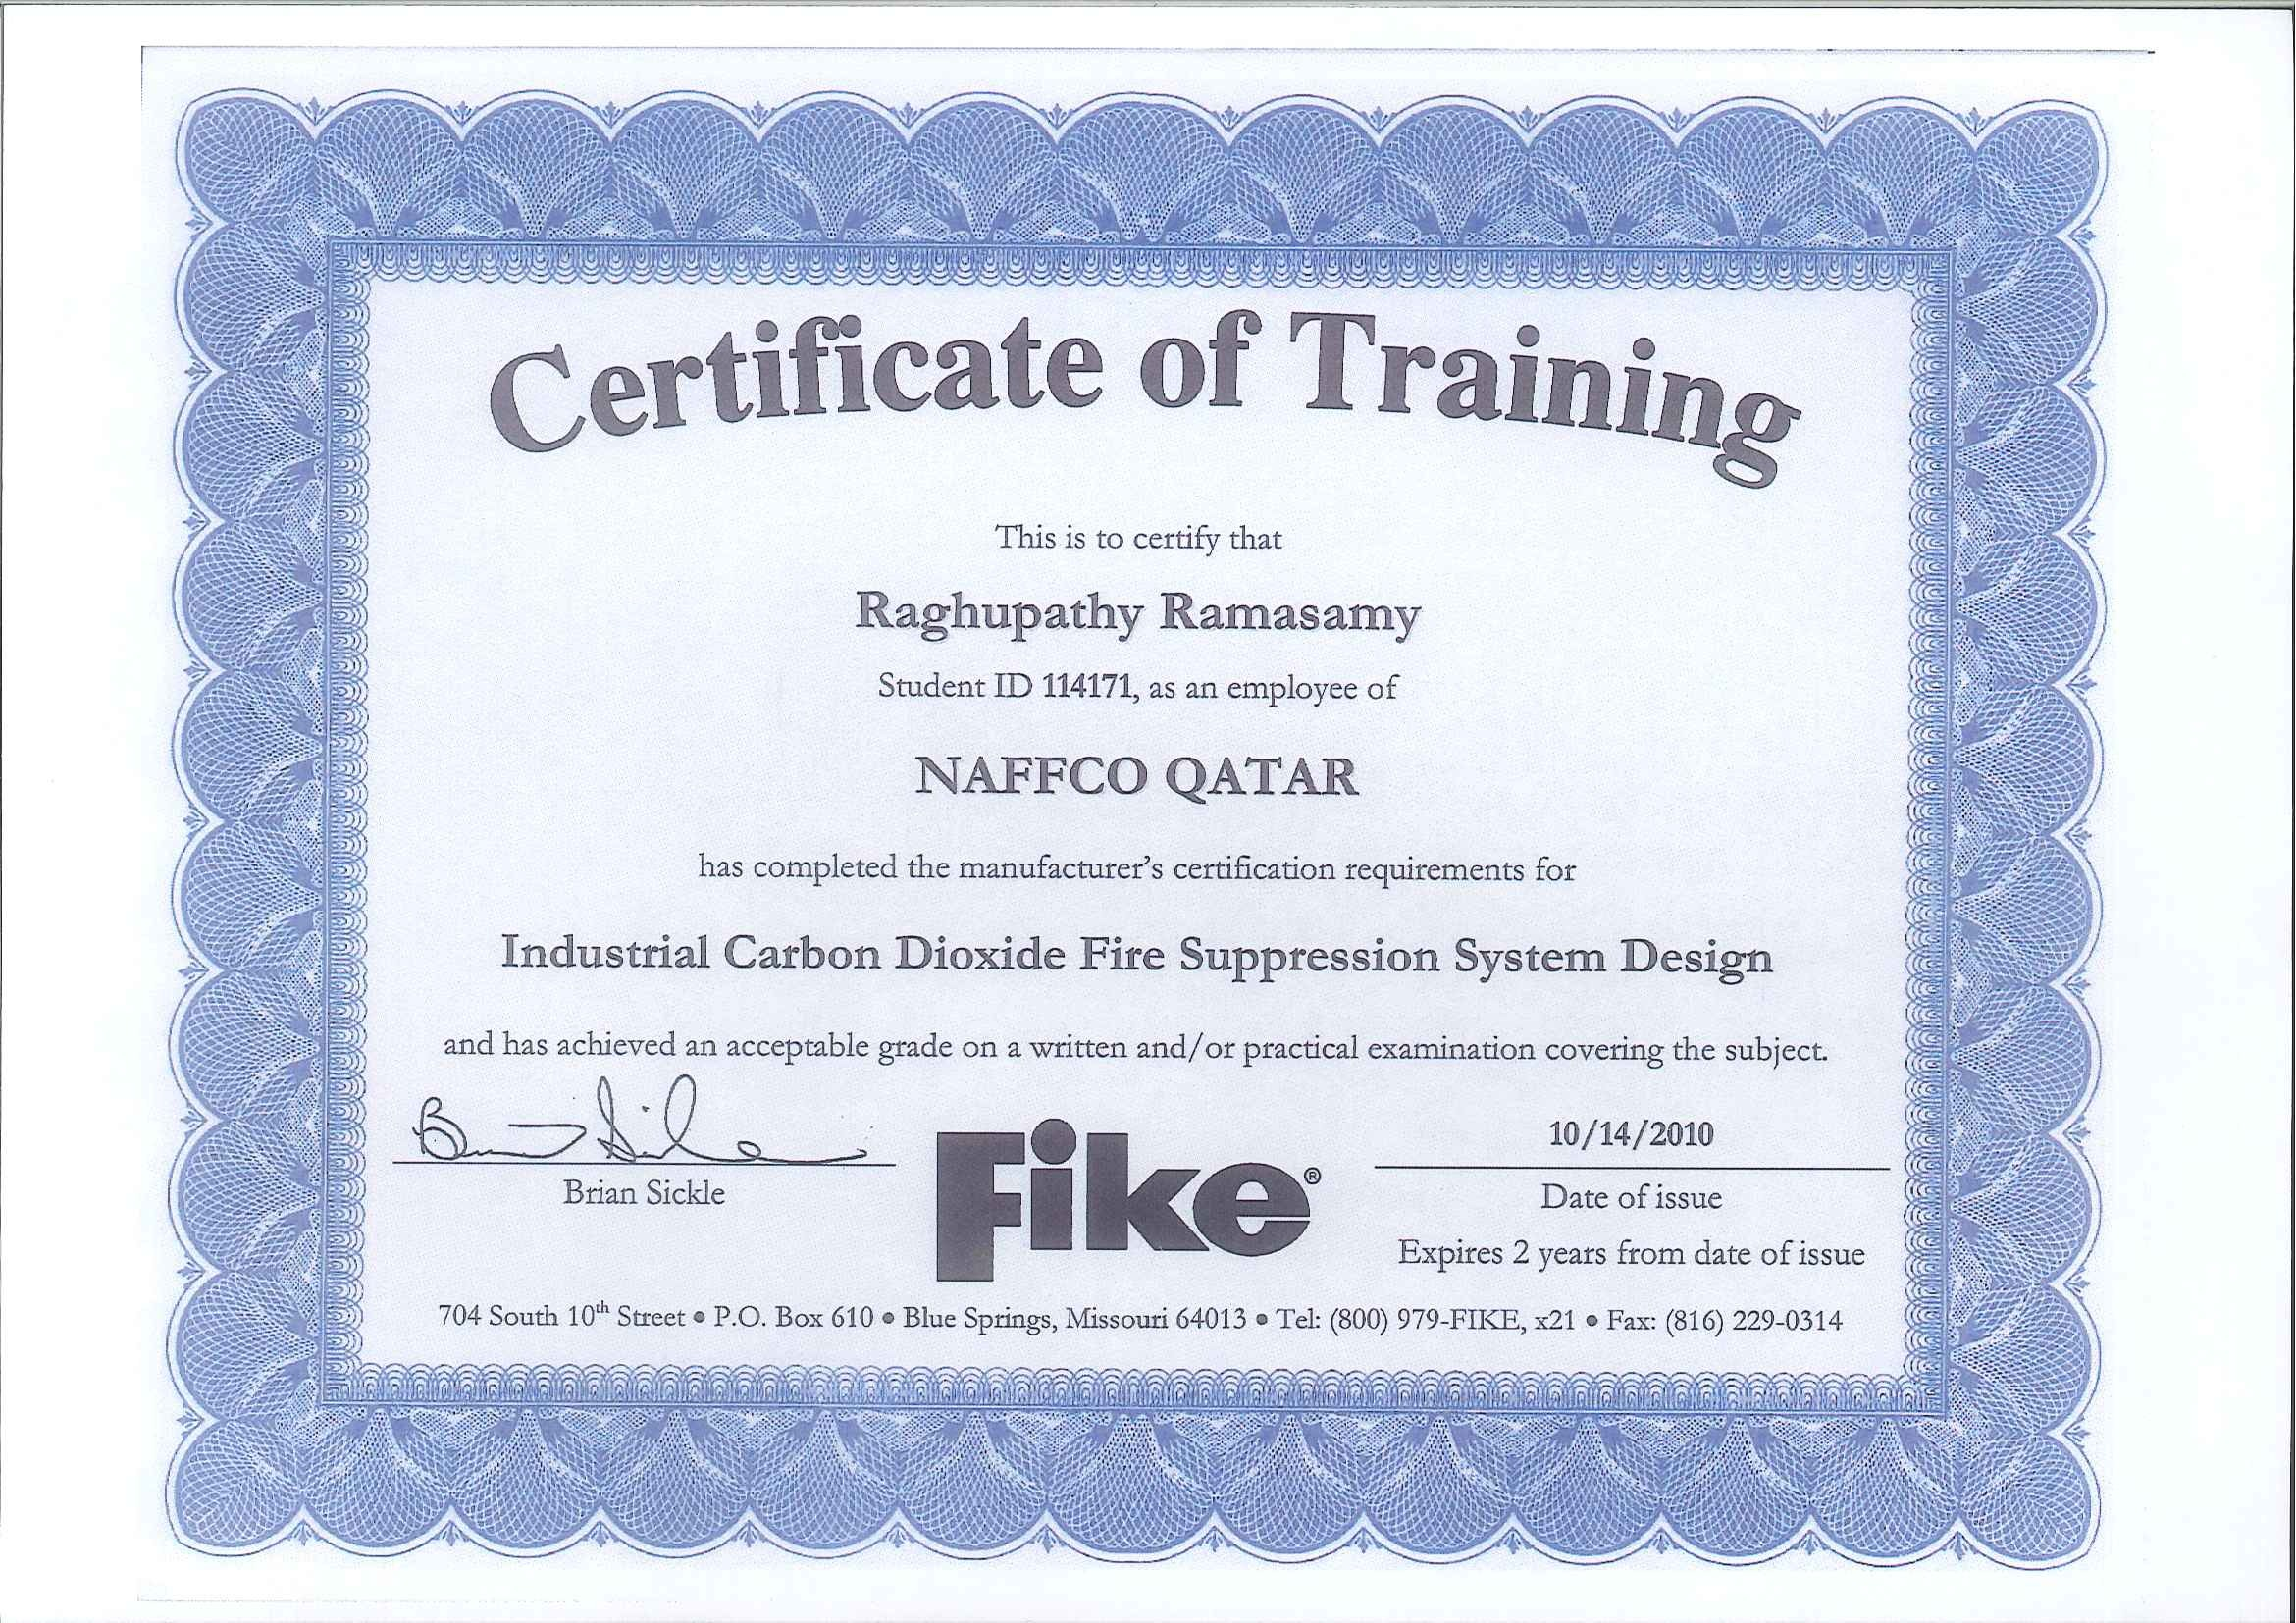 Ragupathy ramasamy cfps pmp bayt training institute fike corporation xflitez Image collections